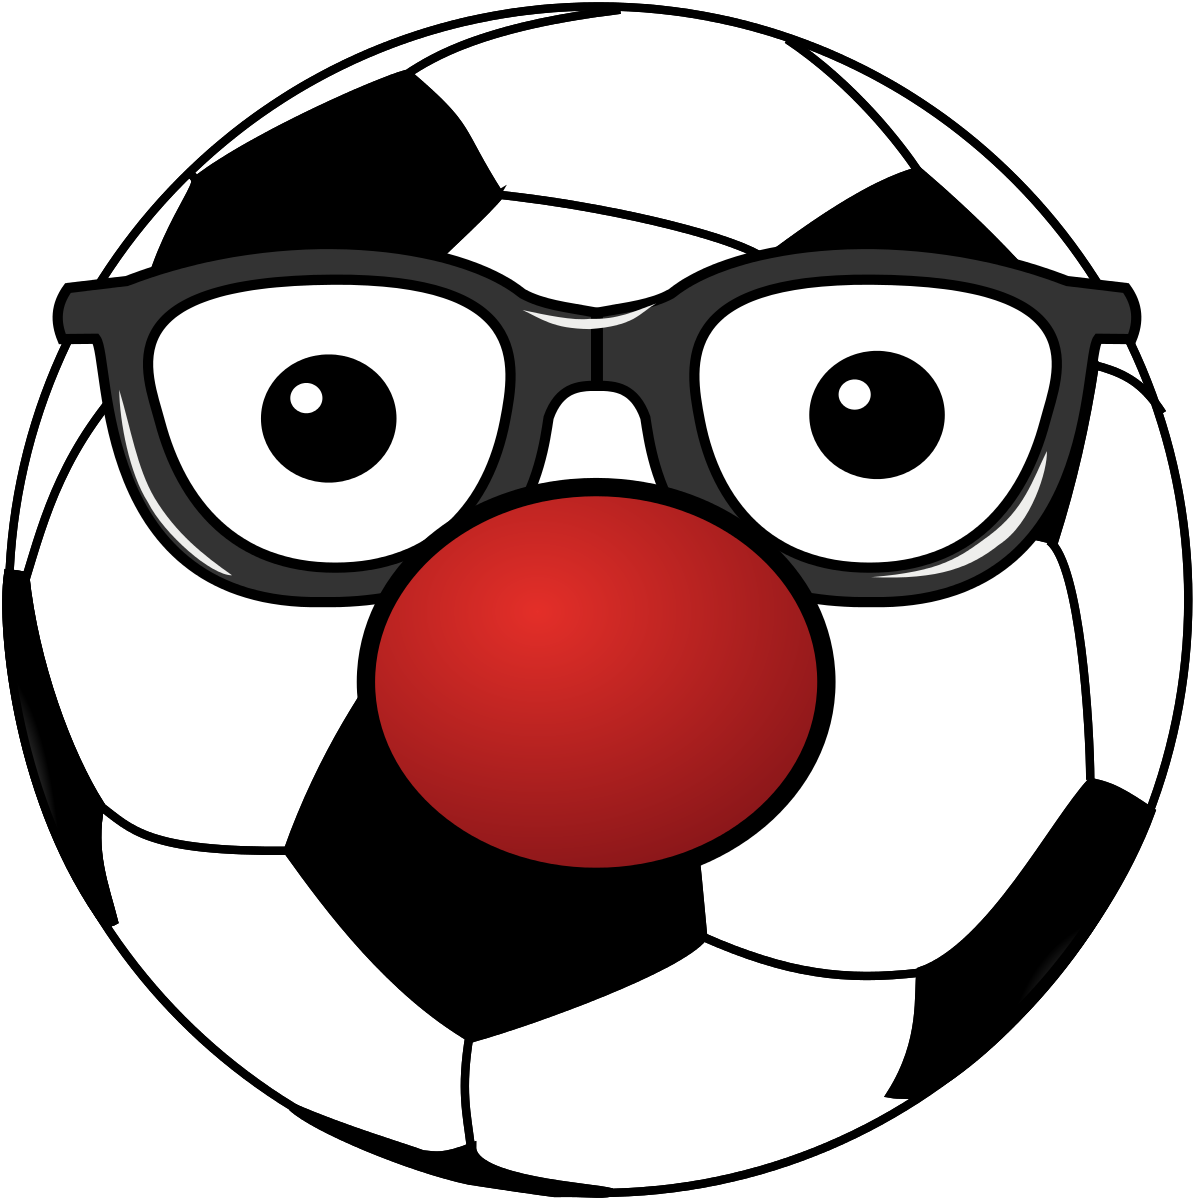 Clowny Soccer Ball Clipart by contactr : Sport Cliparts #19228 ...